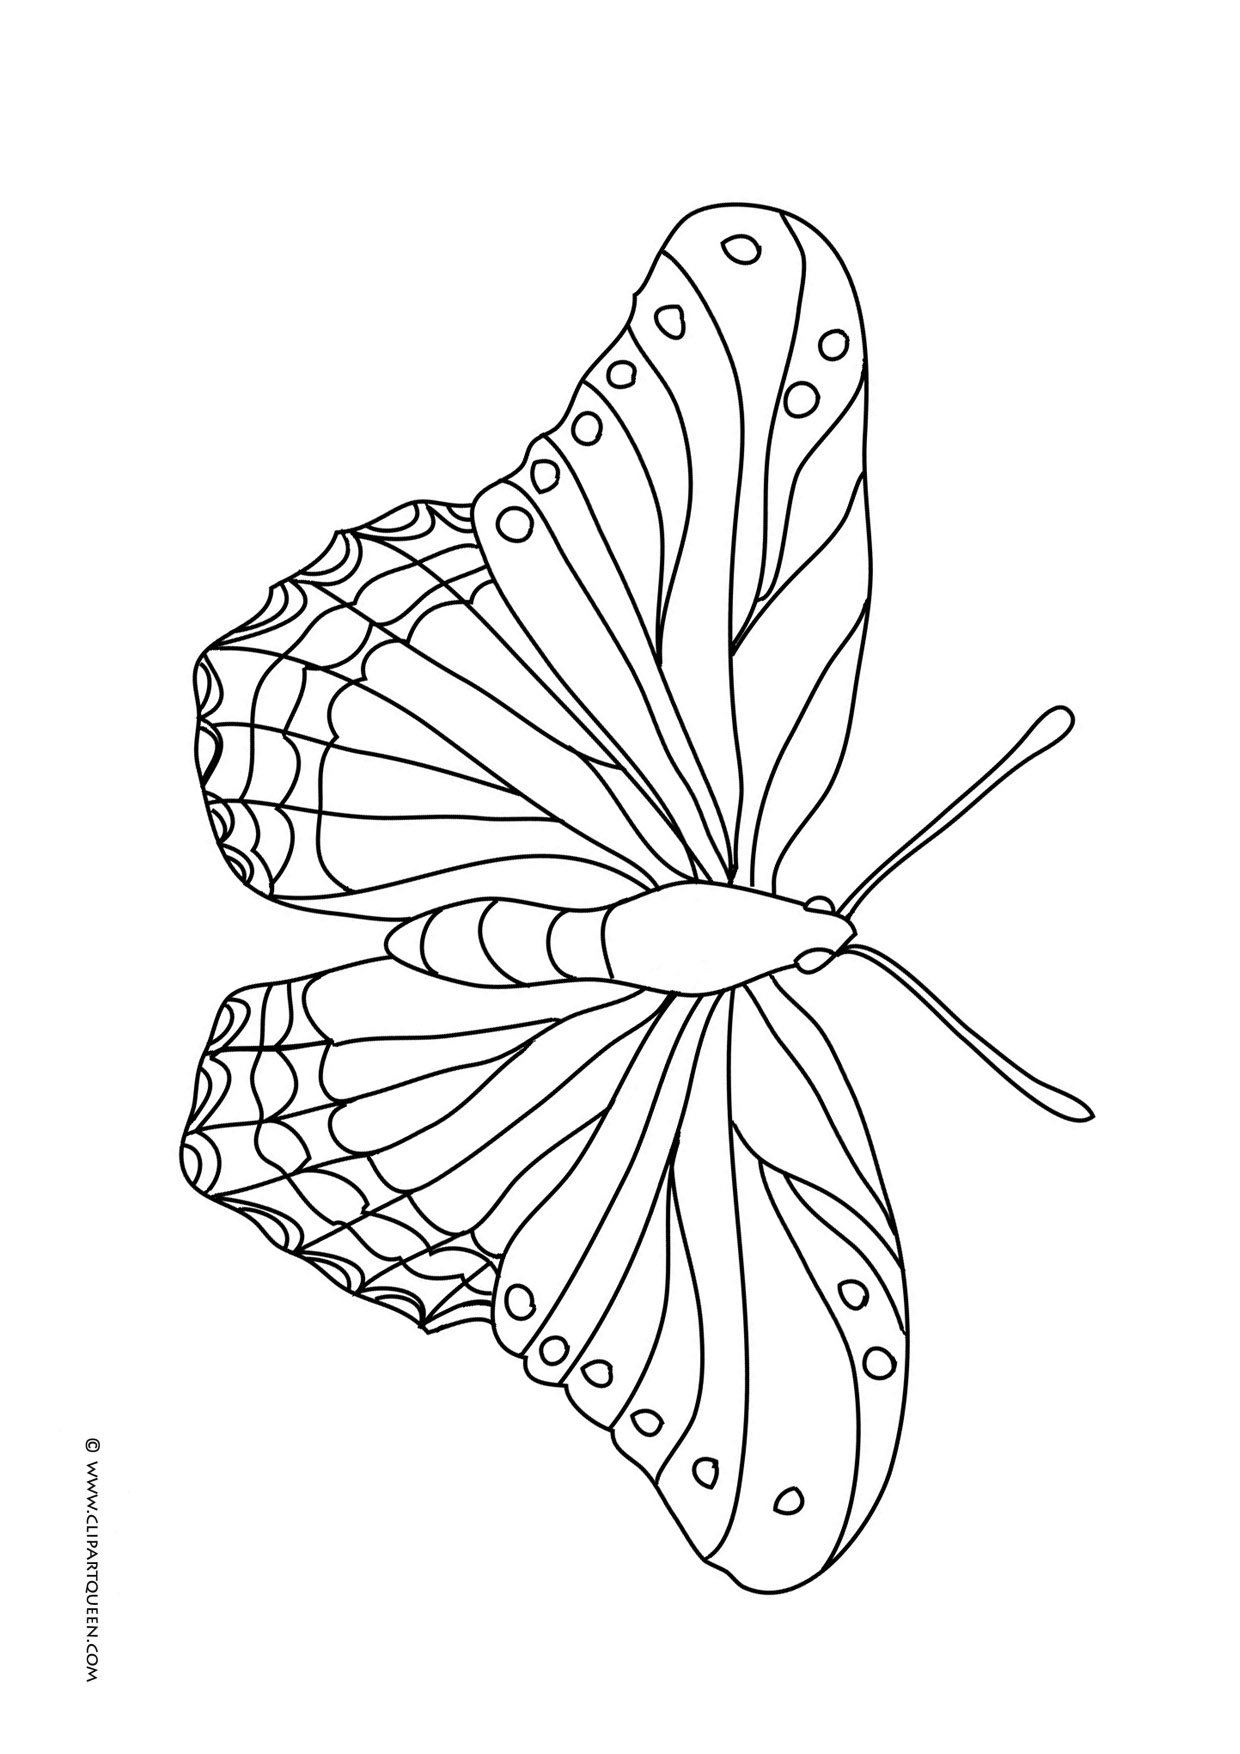 coloring pages butterfly free printable butterfly coloring pages for kids butterfly pages coloring